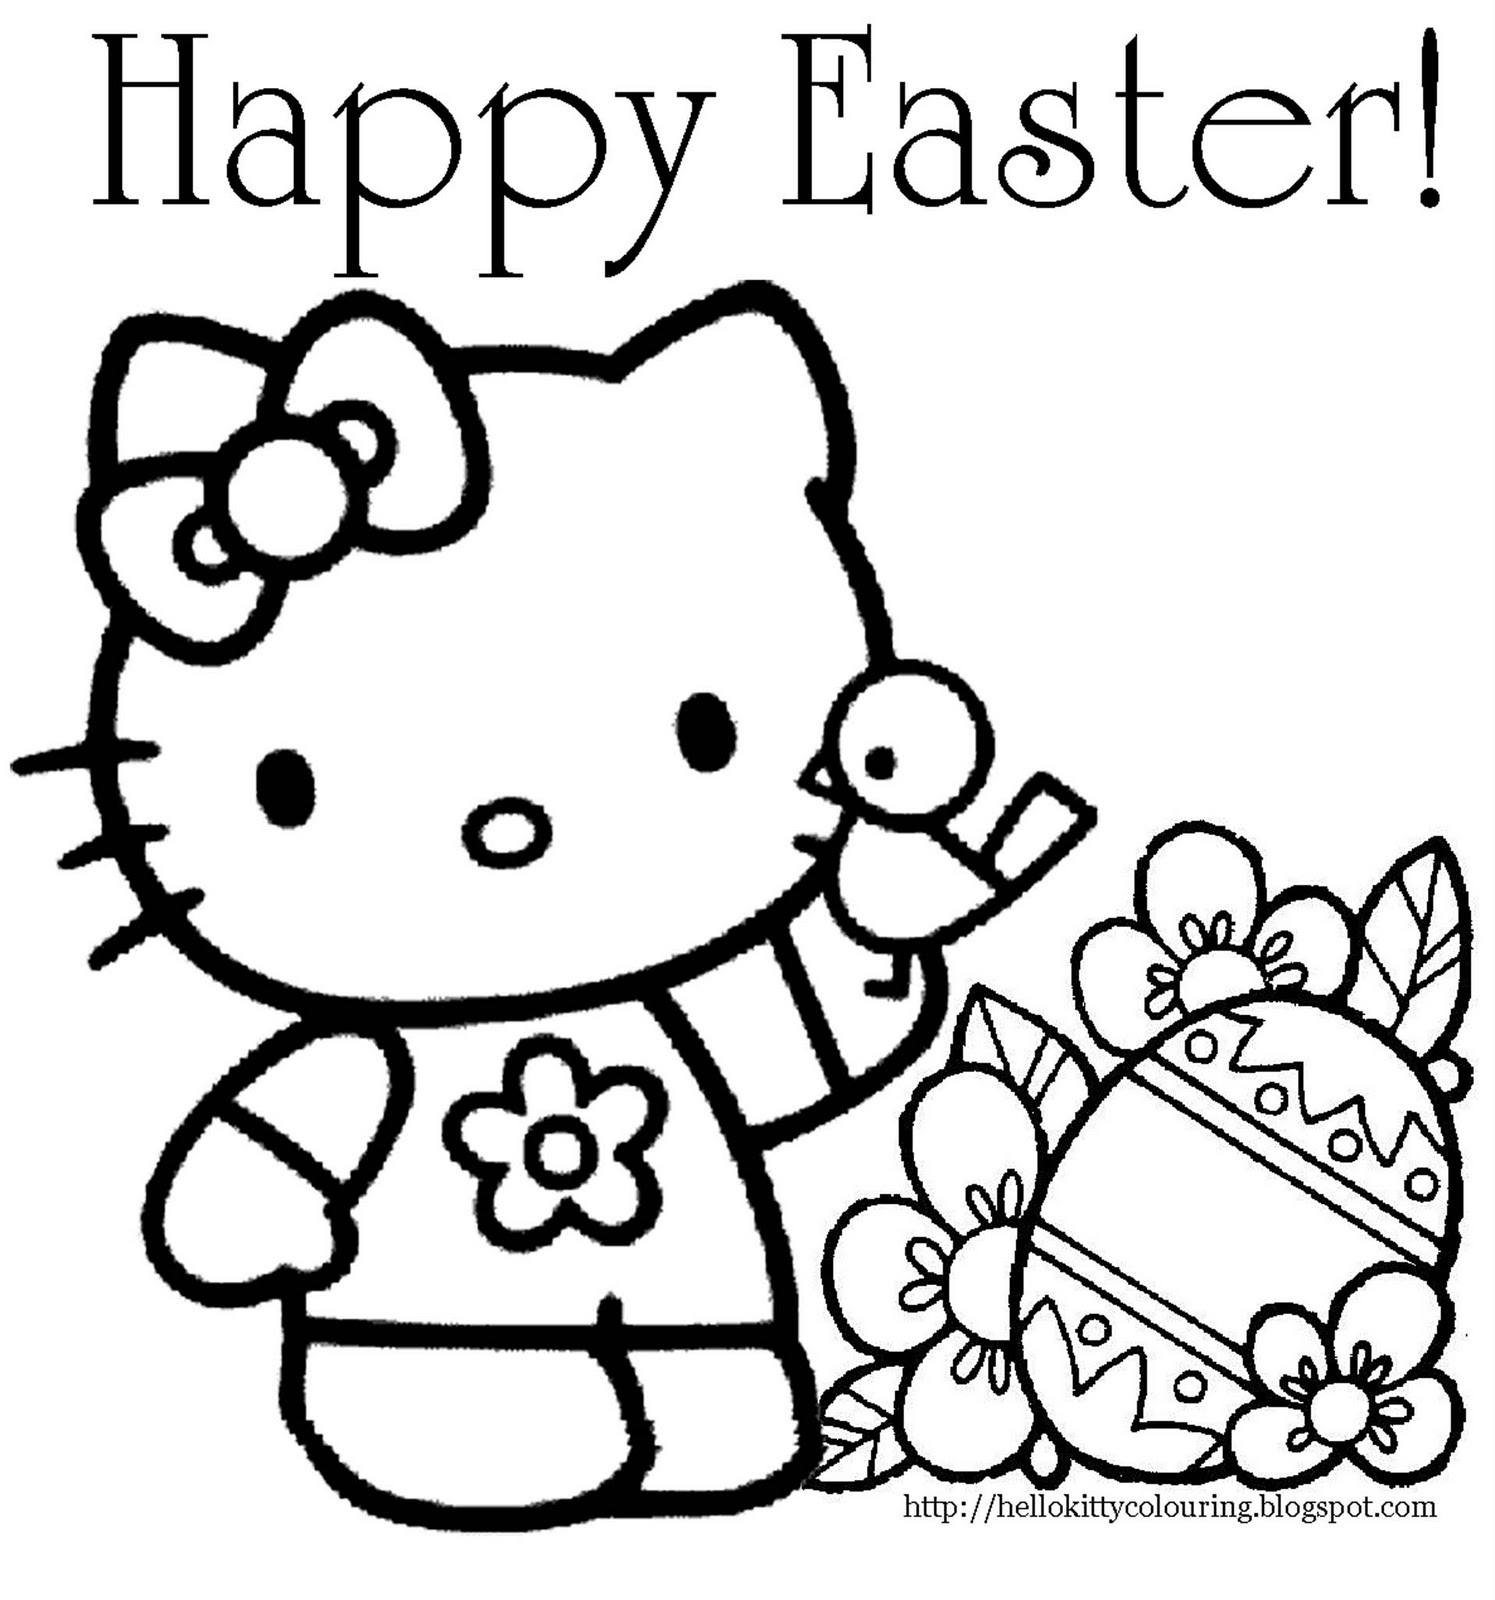 Easter Colouring Miscellaneous Easter Colouring Pages Colouring Pages Easter